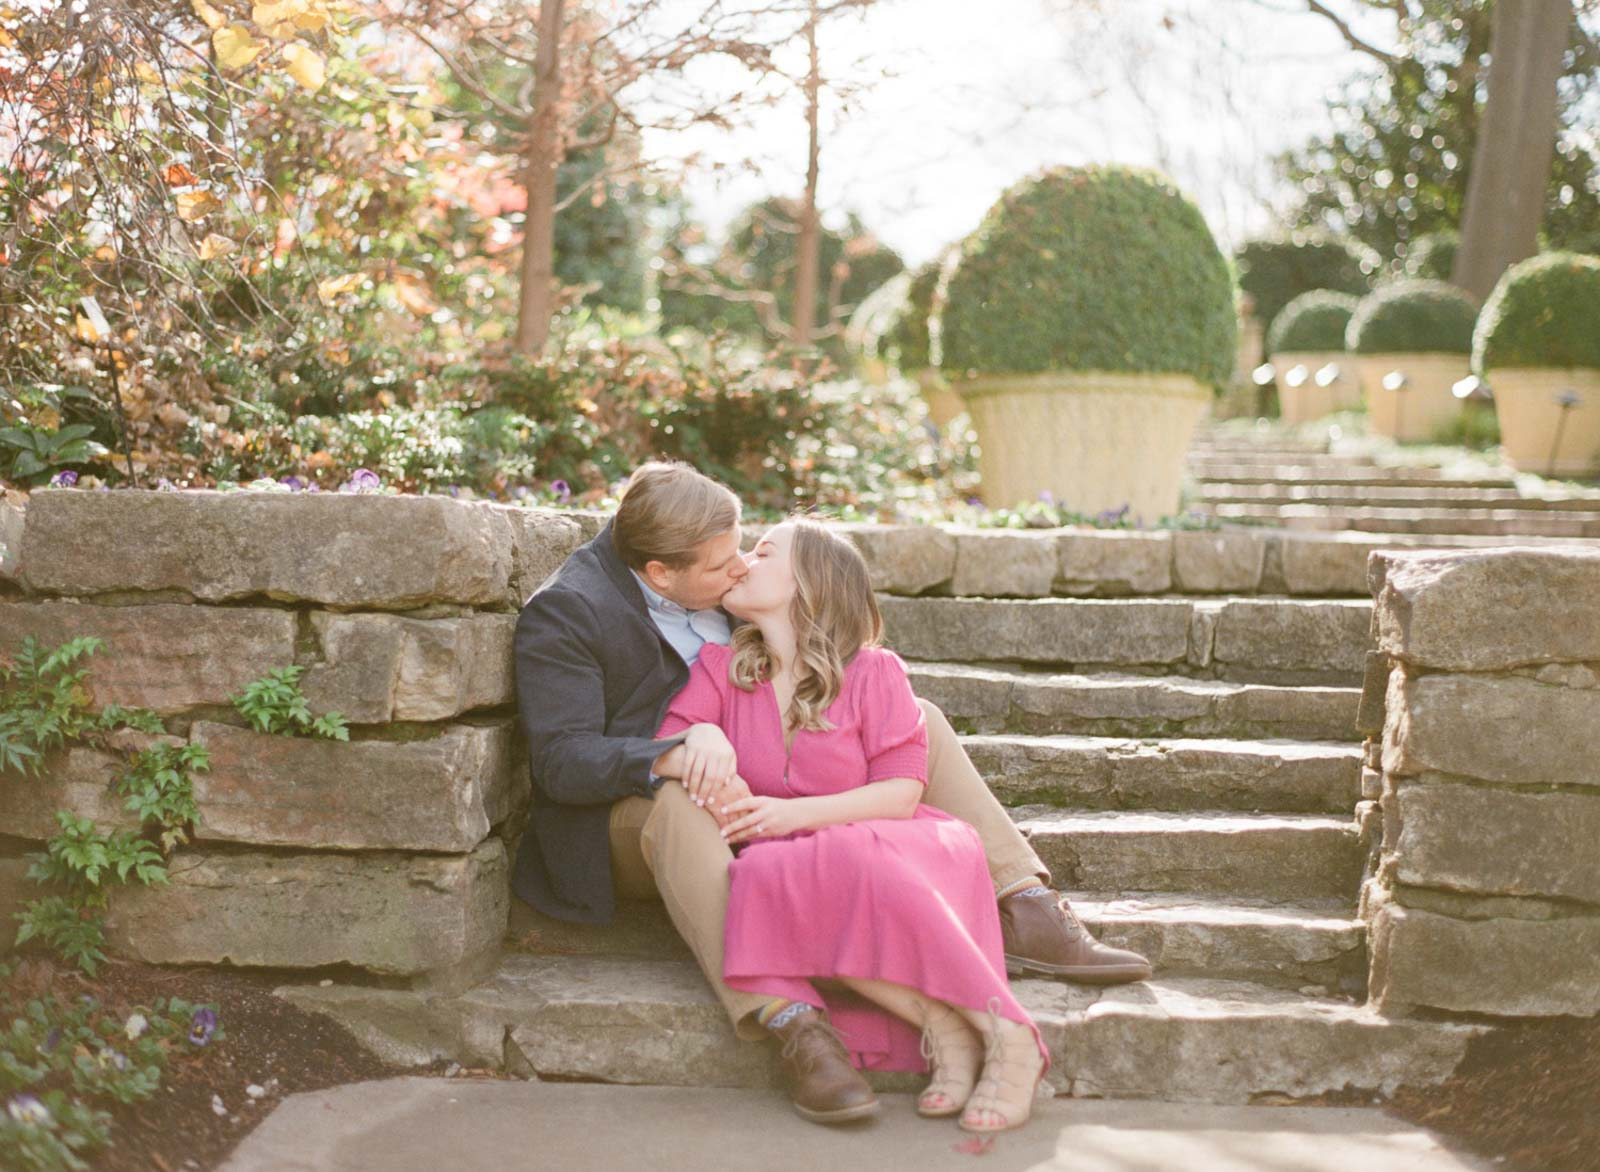 Dallas Arboretum Engagement-JenSymes-73.jpg